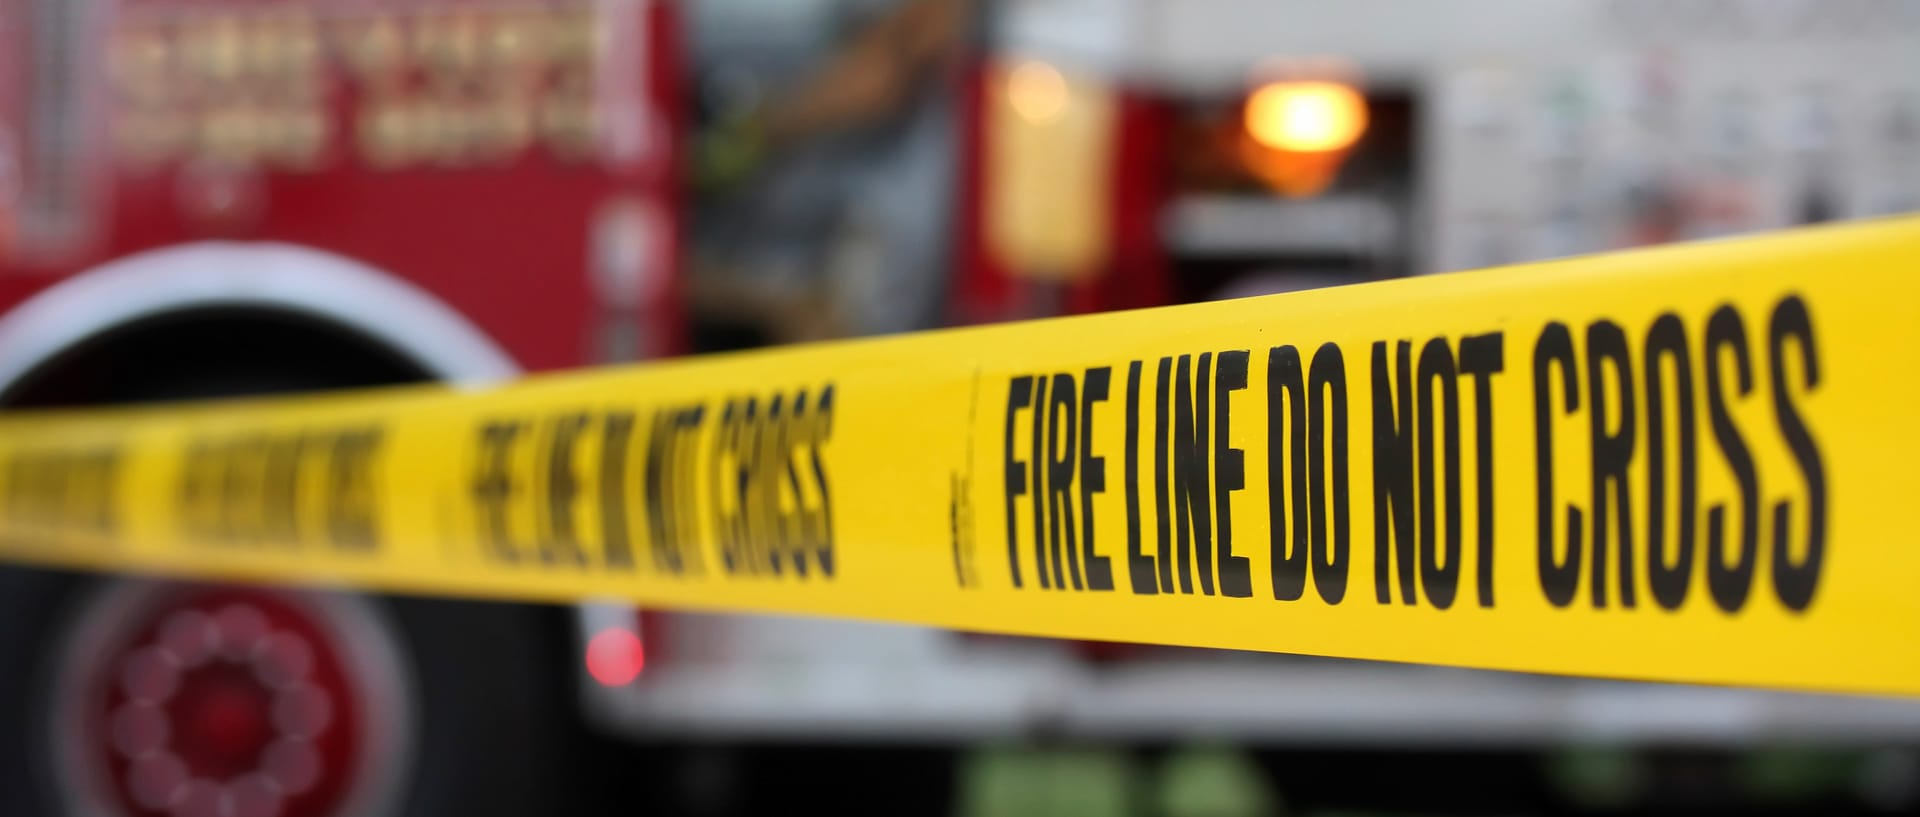 Settlement in Dishwasher Fire Lawsuit - Consumer Reports